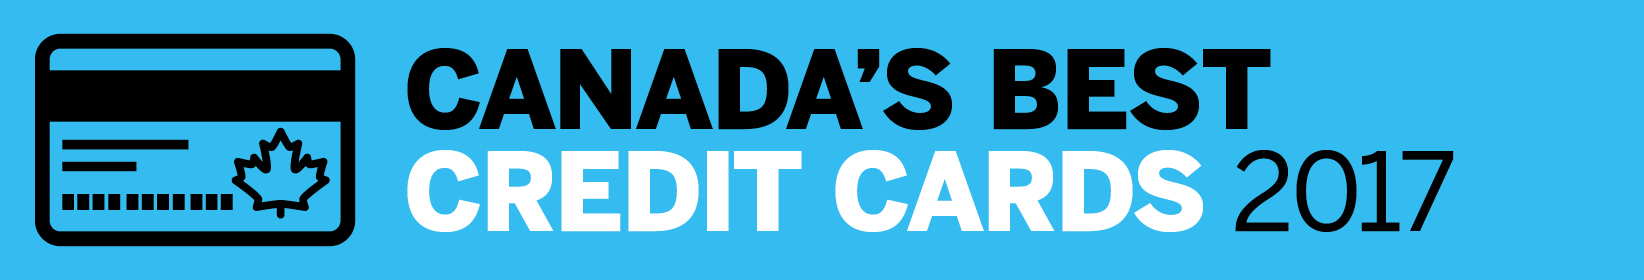 Canadas best credit cards of 2017 moneysense more from canadas best credit cards 2017 reheart Gallery